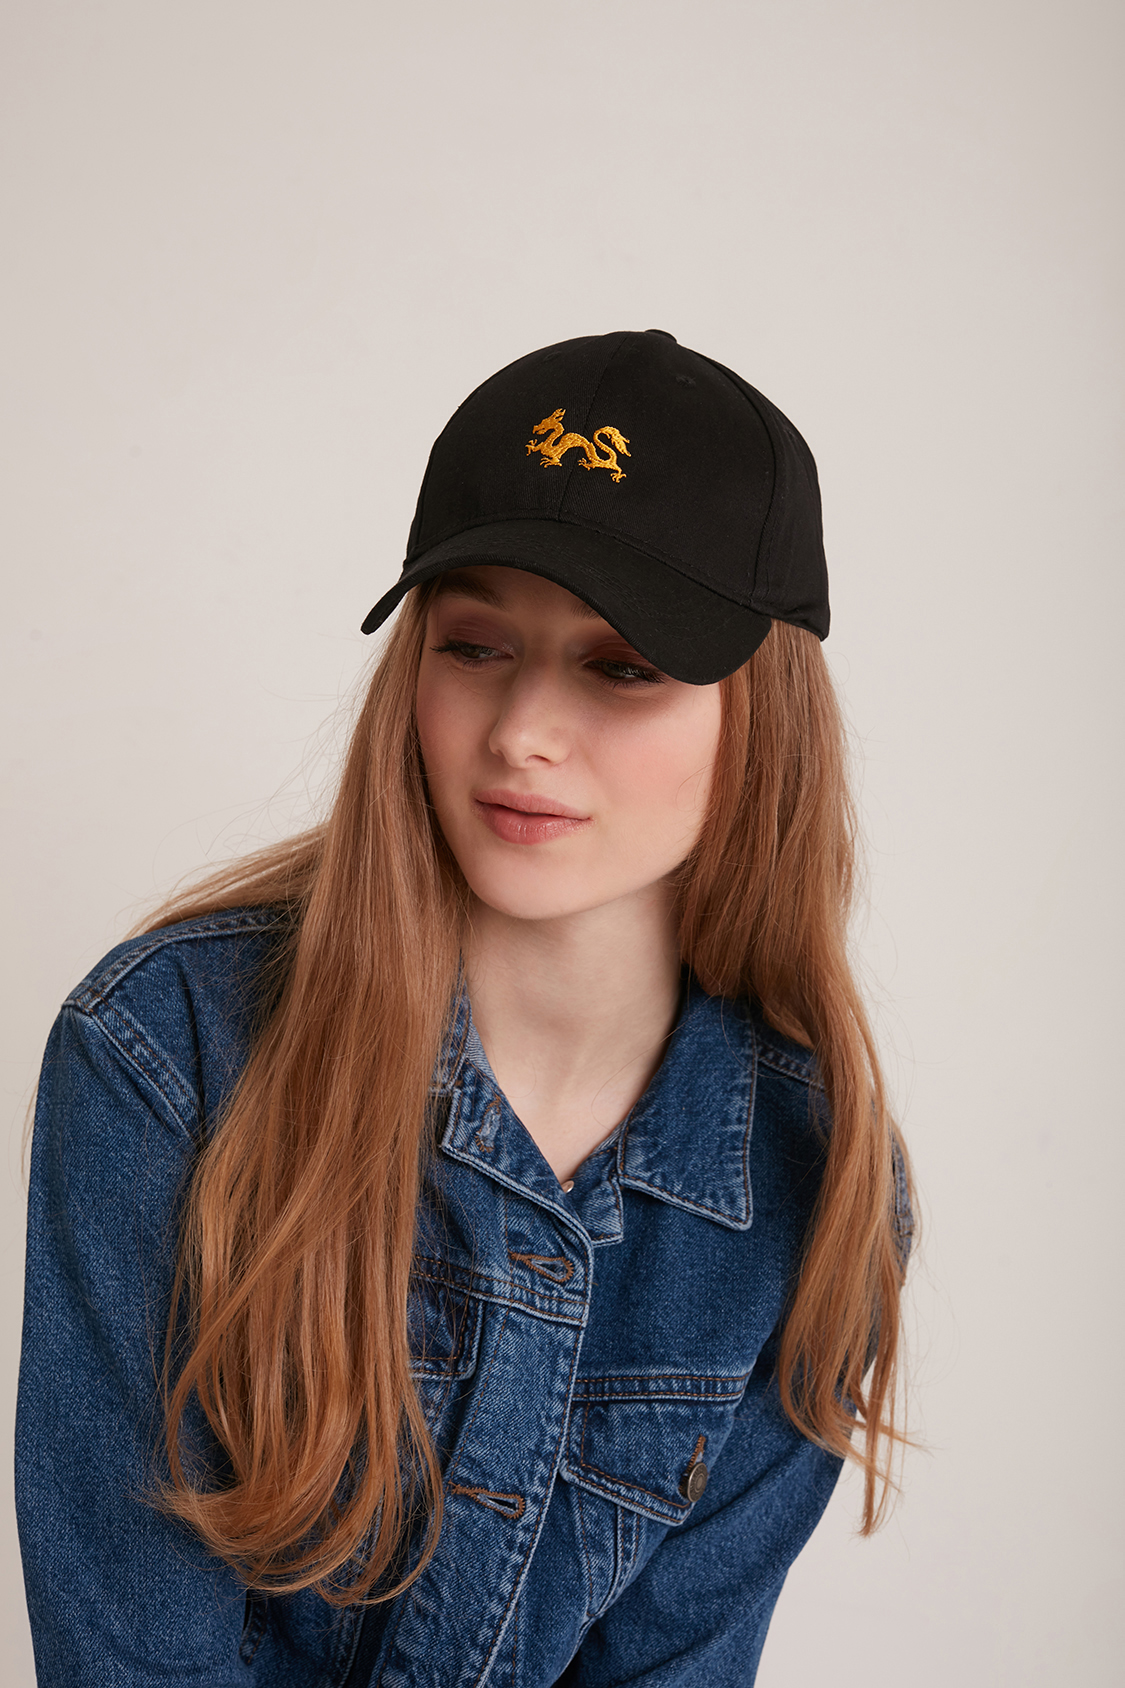 Embroidered dragon hat